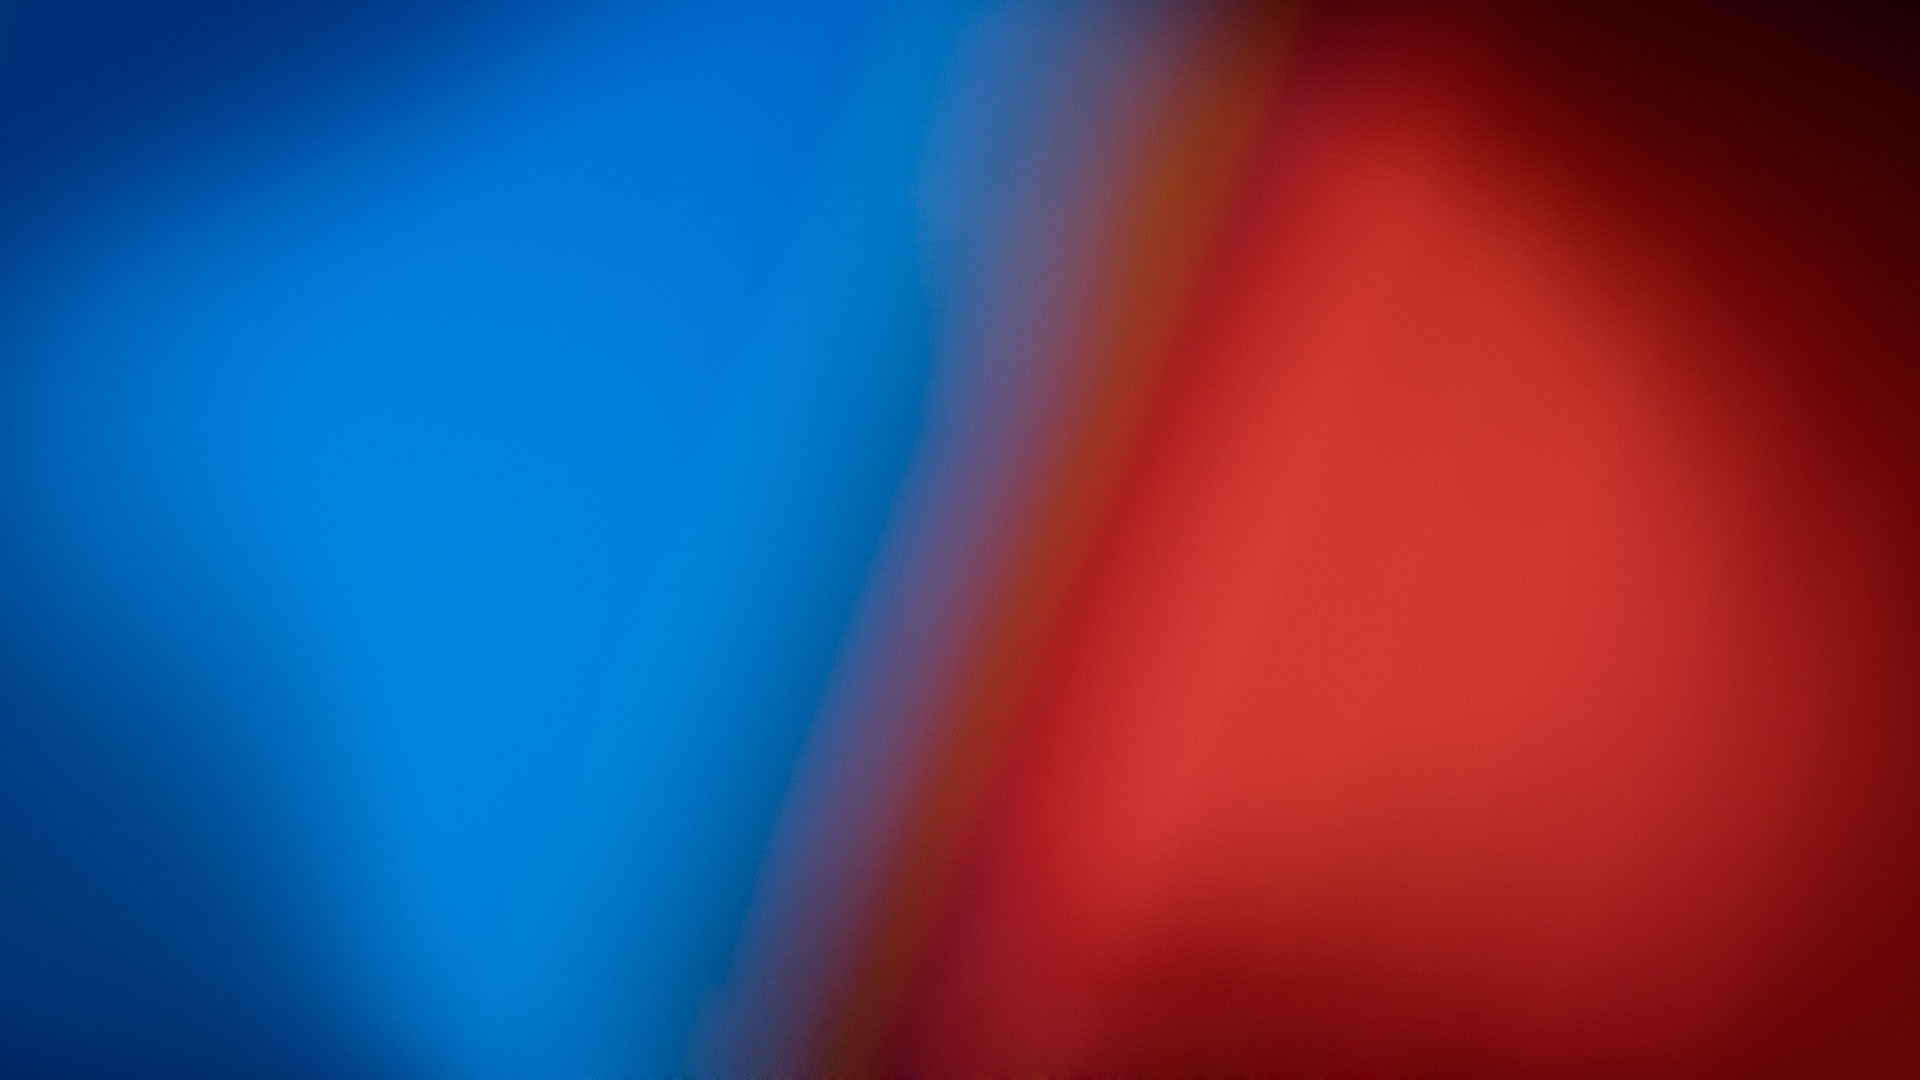 Res: 1920x1080, Blue And Red Wallpaper HD Desktop.